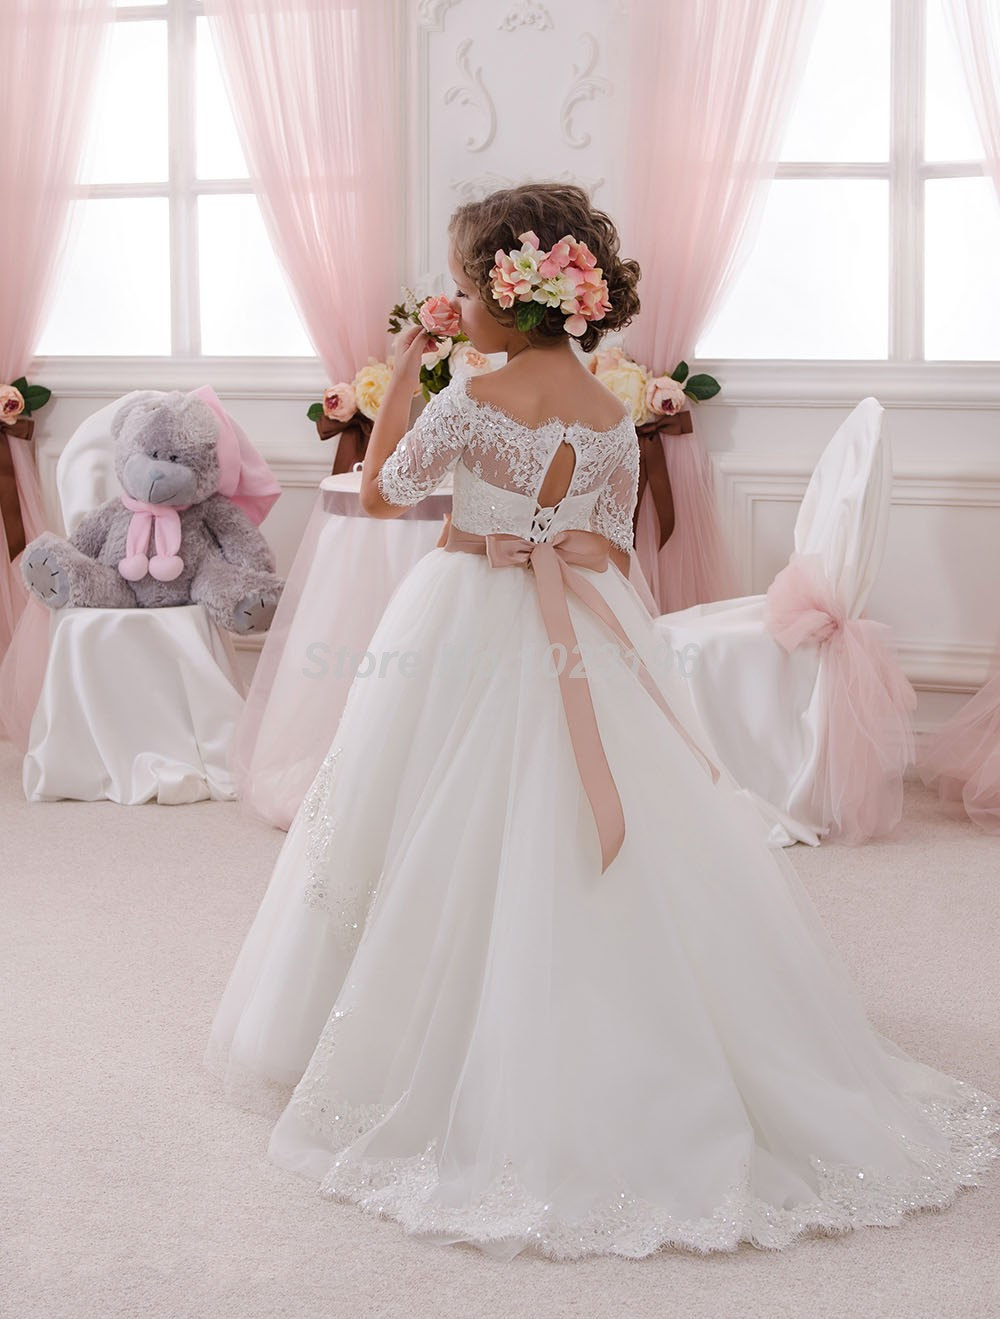 Hot White Ivory Lace Flower Girls Dresses Sweep Train Girls First Communion Dress Princess Dress Ball Gown new hot pretty ivory or white appliques tulle beads sash flower girl dresses with train white girls first communion dresses